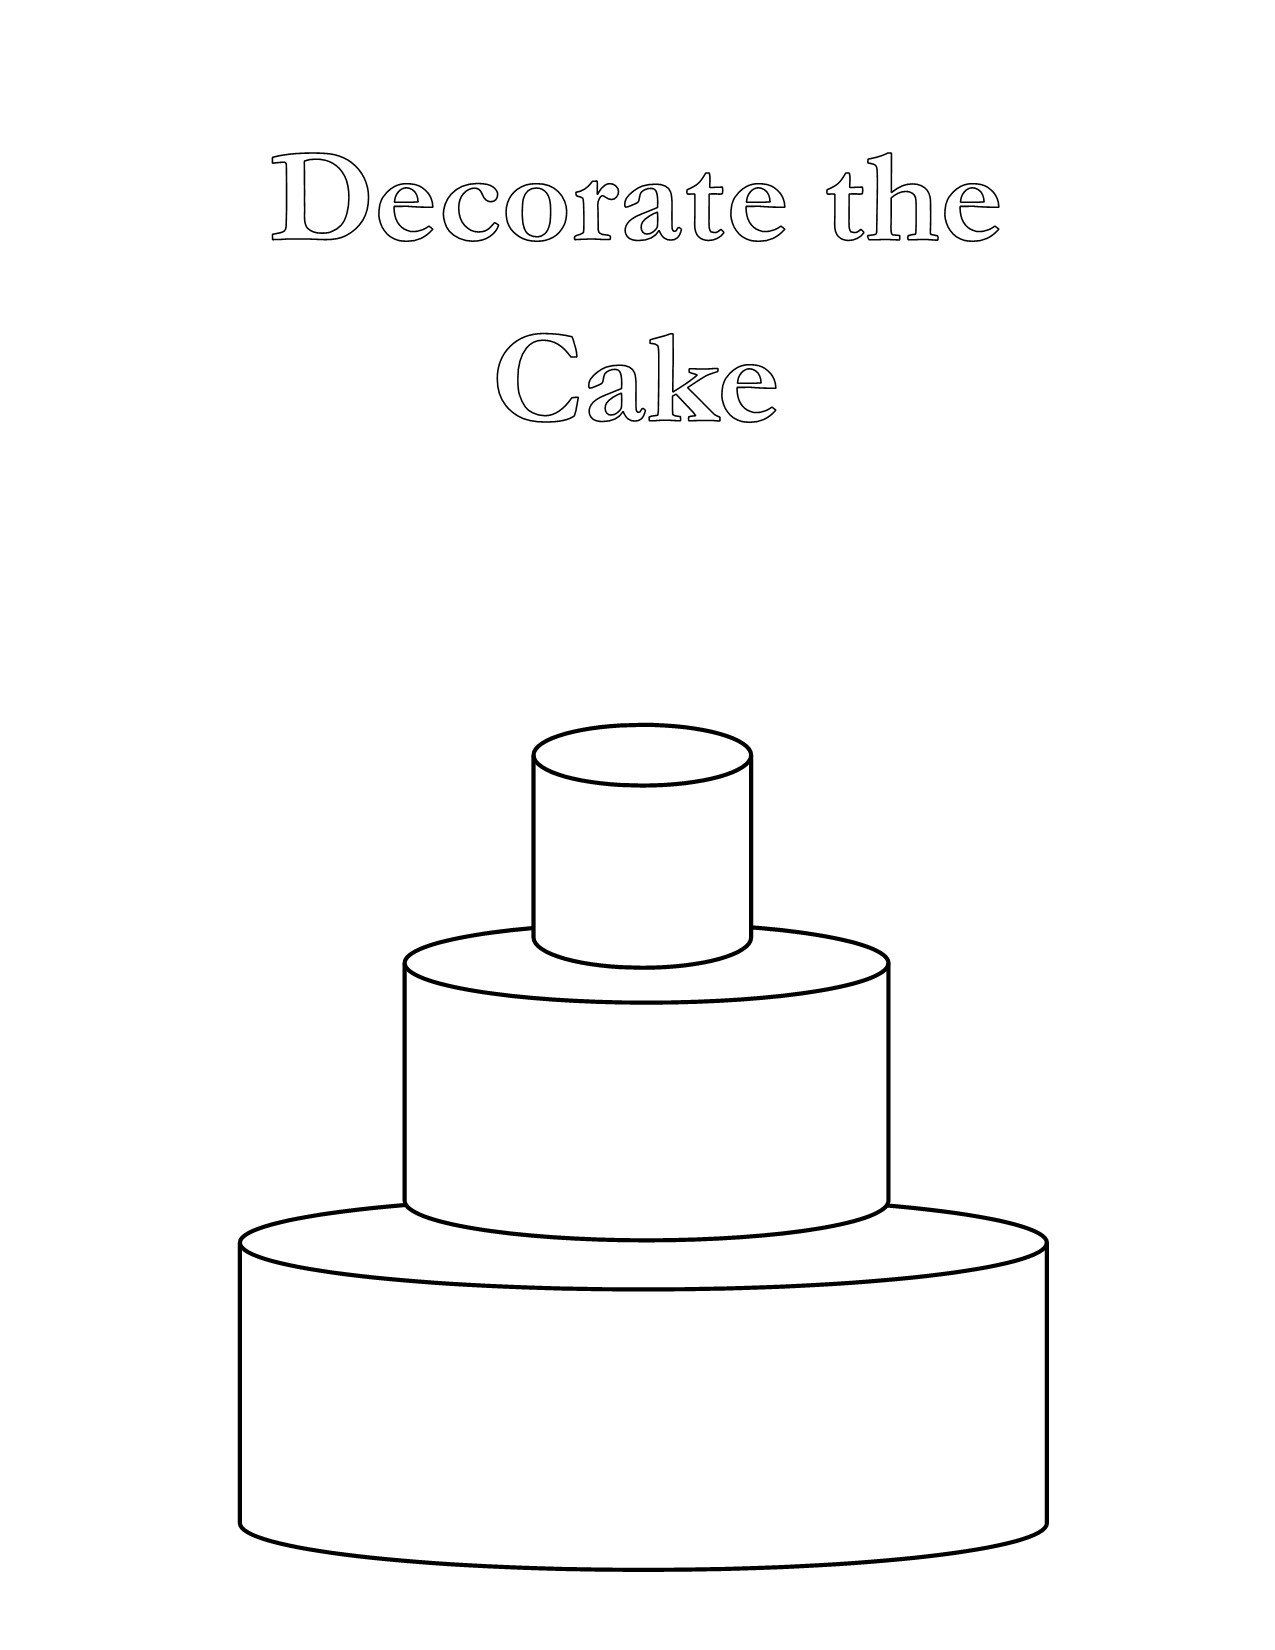 Wedding Coloring Page Kids Coloring Page Reception Coloring Reception Fun Wedding Fun Wedding Coloring Pages Coloring Pages For Kids Coloring For Kids